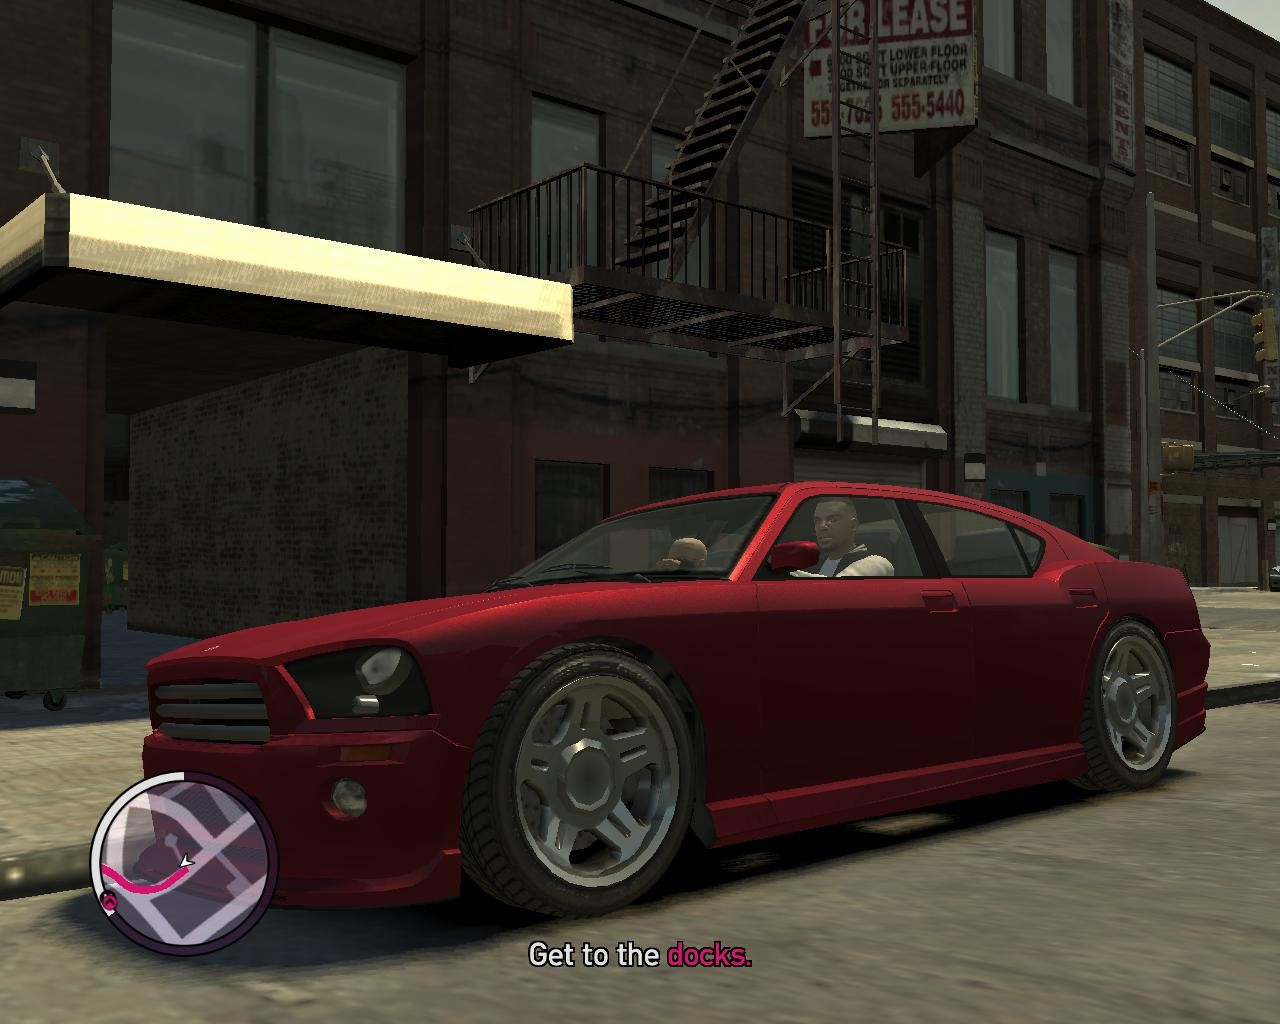 Grand Theft Auto IV: Complete Edition (Steam Gift RU)